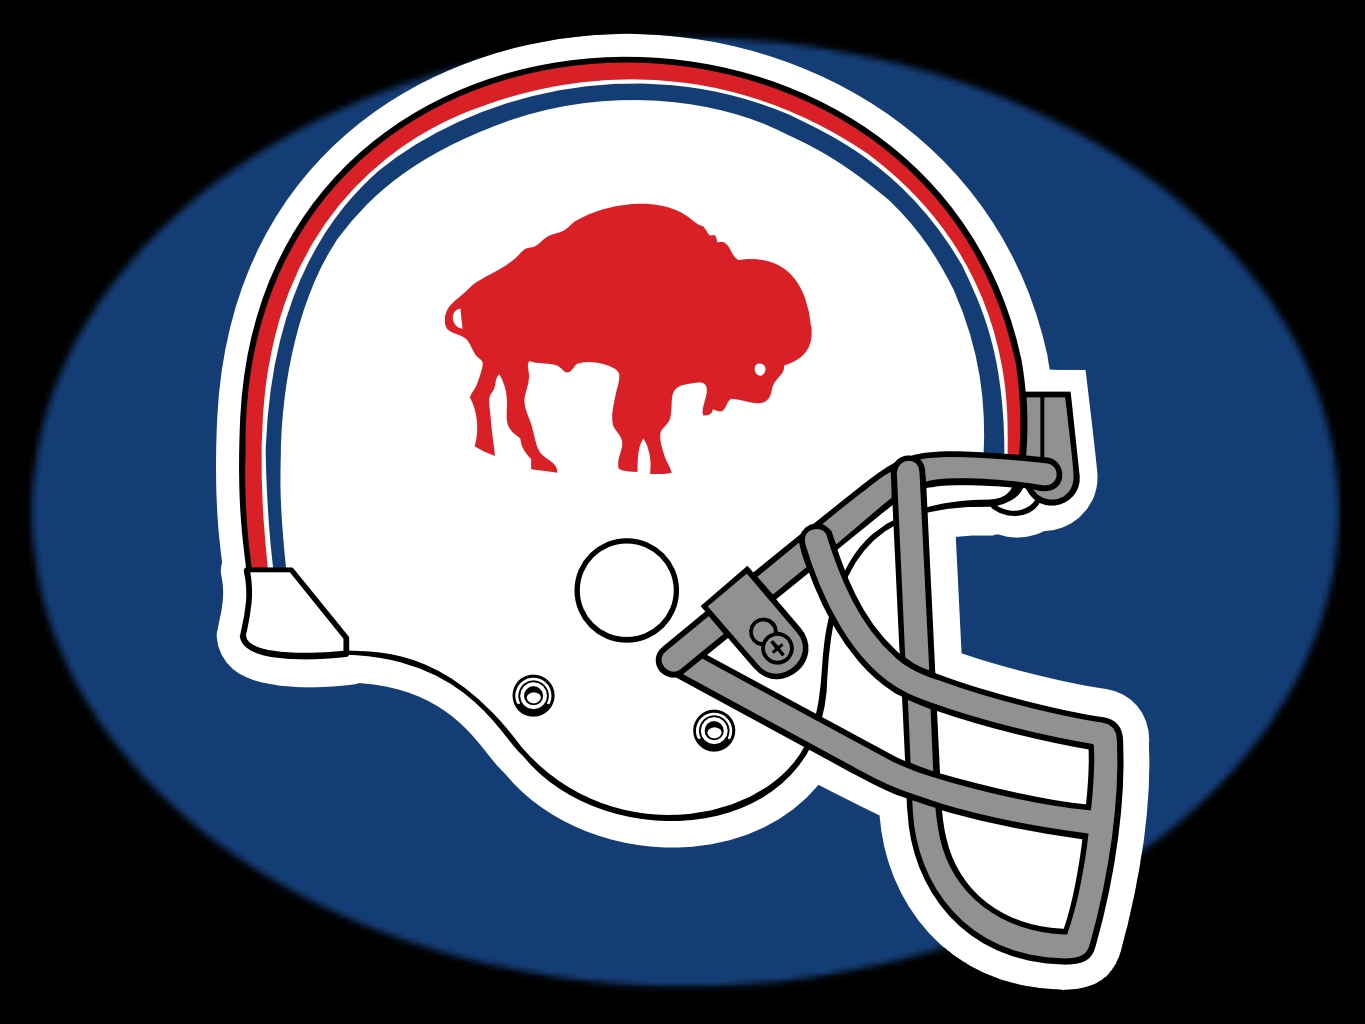 NFL Team Logos   Photo 54 of 416 phombocom 1365x1024